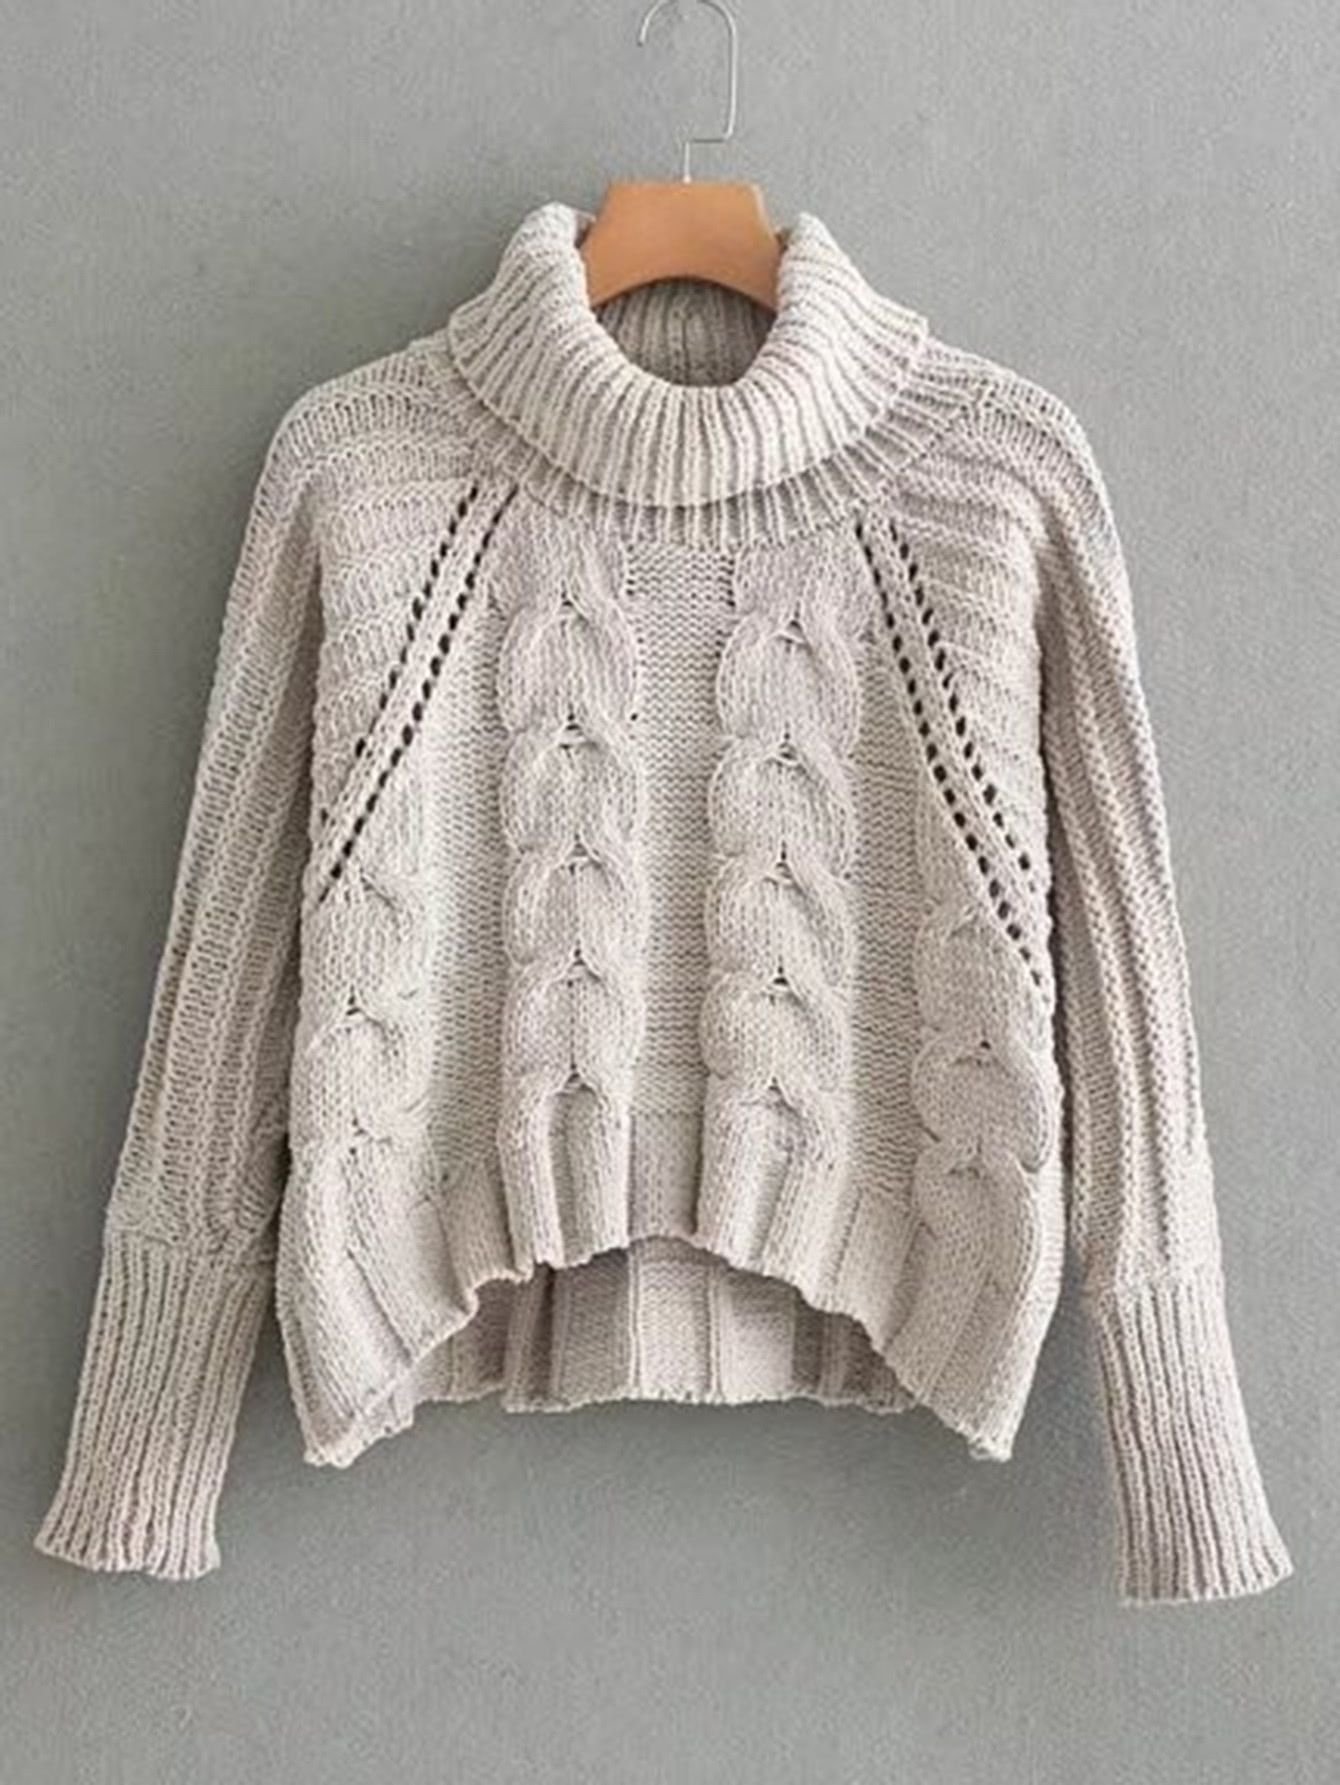 c73a8a81f4 Pointelle Detail Turtleneck Cable Knit Sweater -SheIn(Sheinside ...